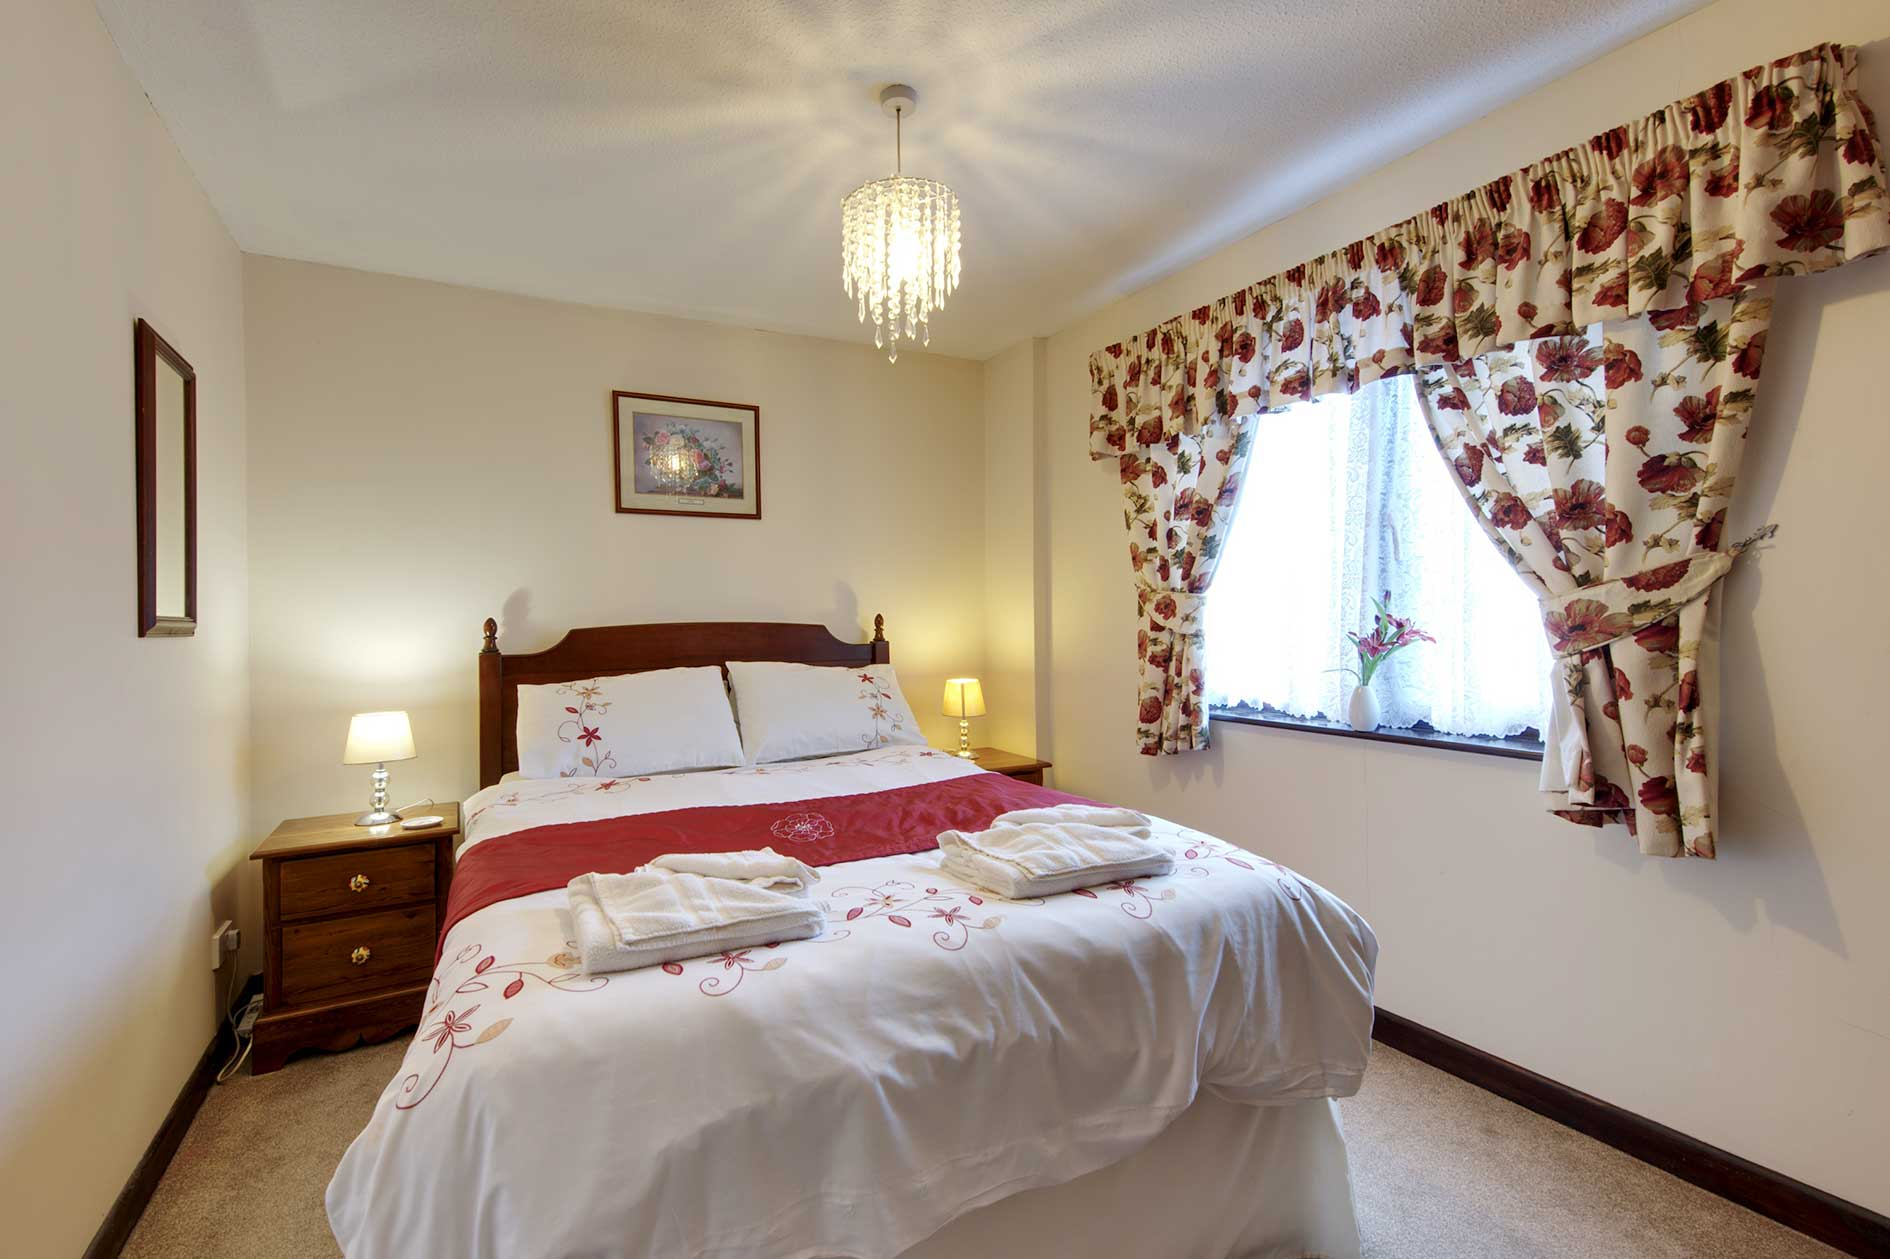 Bedroom Containing A Double Bed With Red Flower Covers And Curtains Plus Wooden Bedside Table